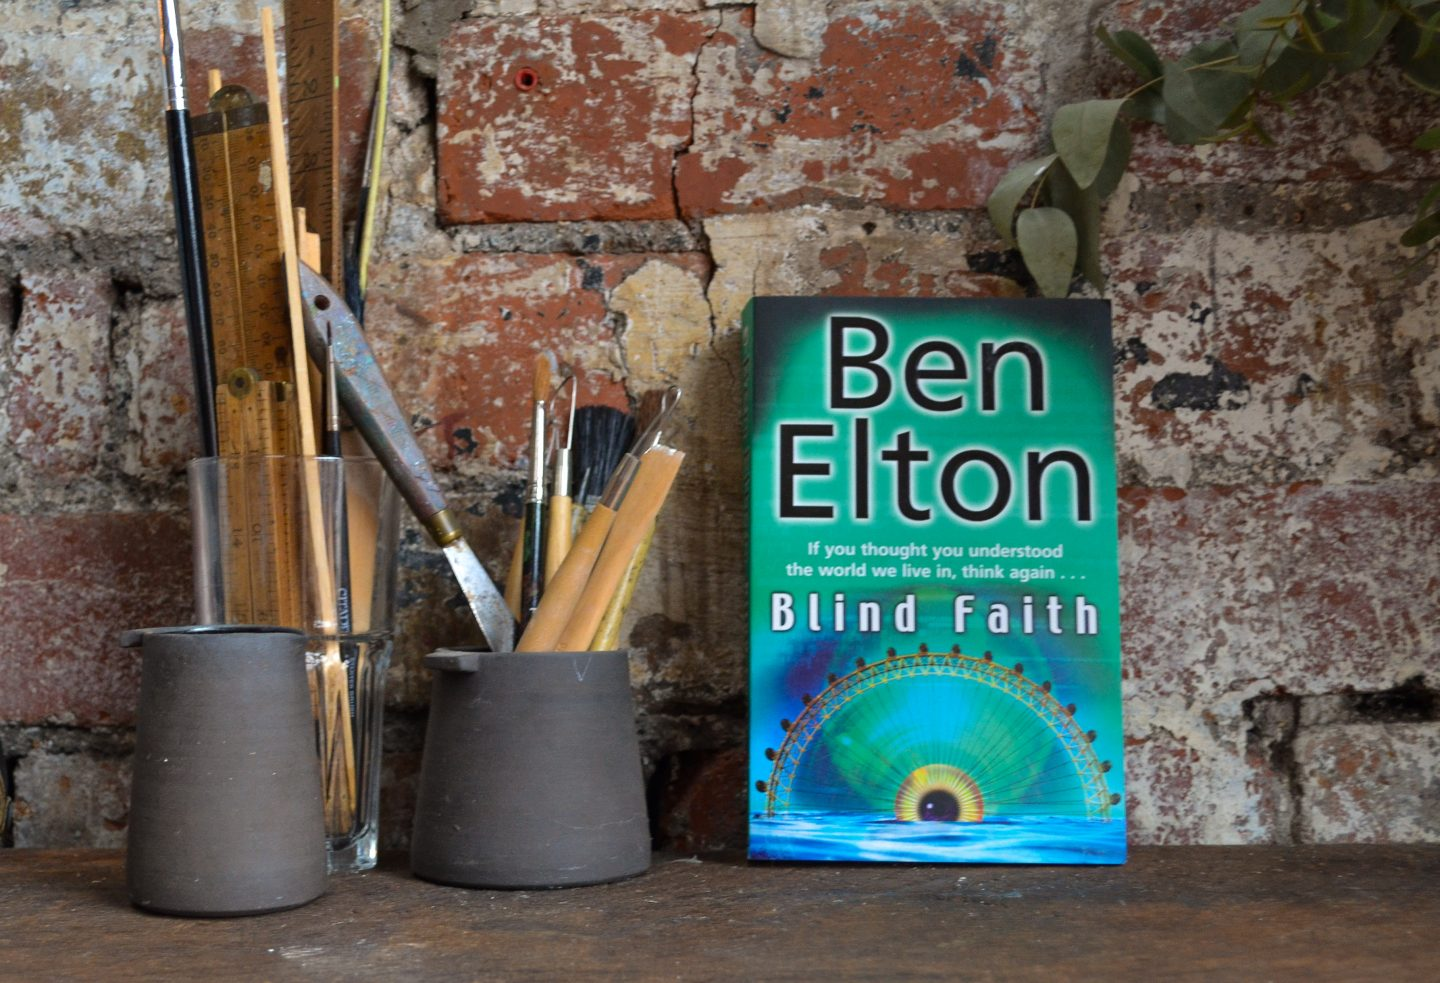 Blind Faith by Ben Elton